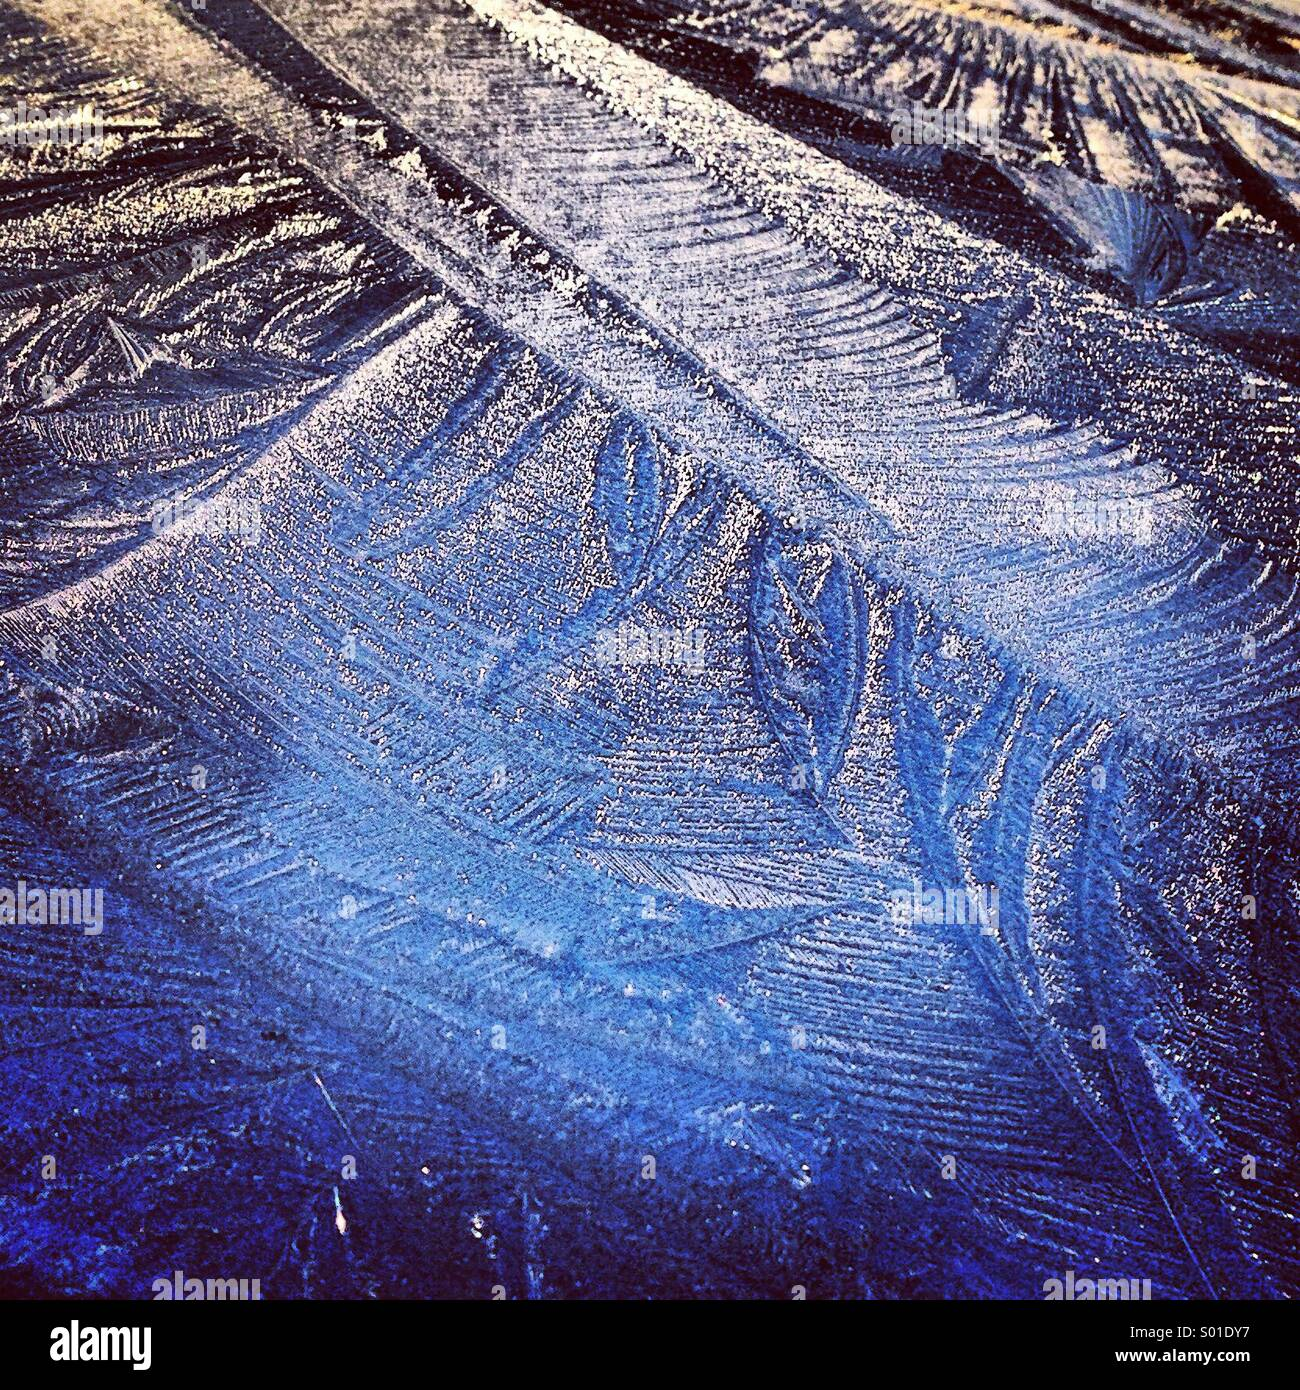 Ice patterns on a car roof - Stock Image